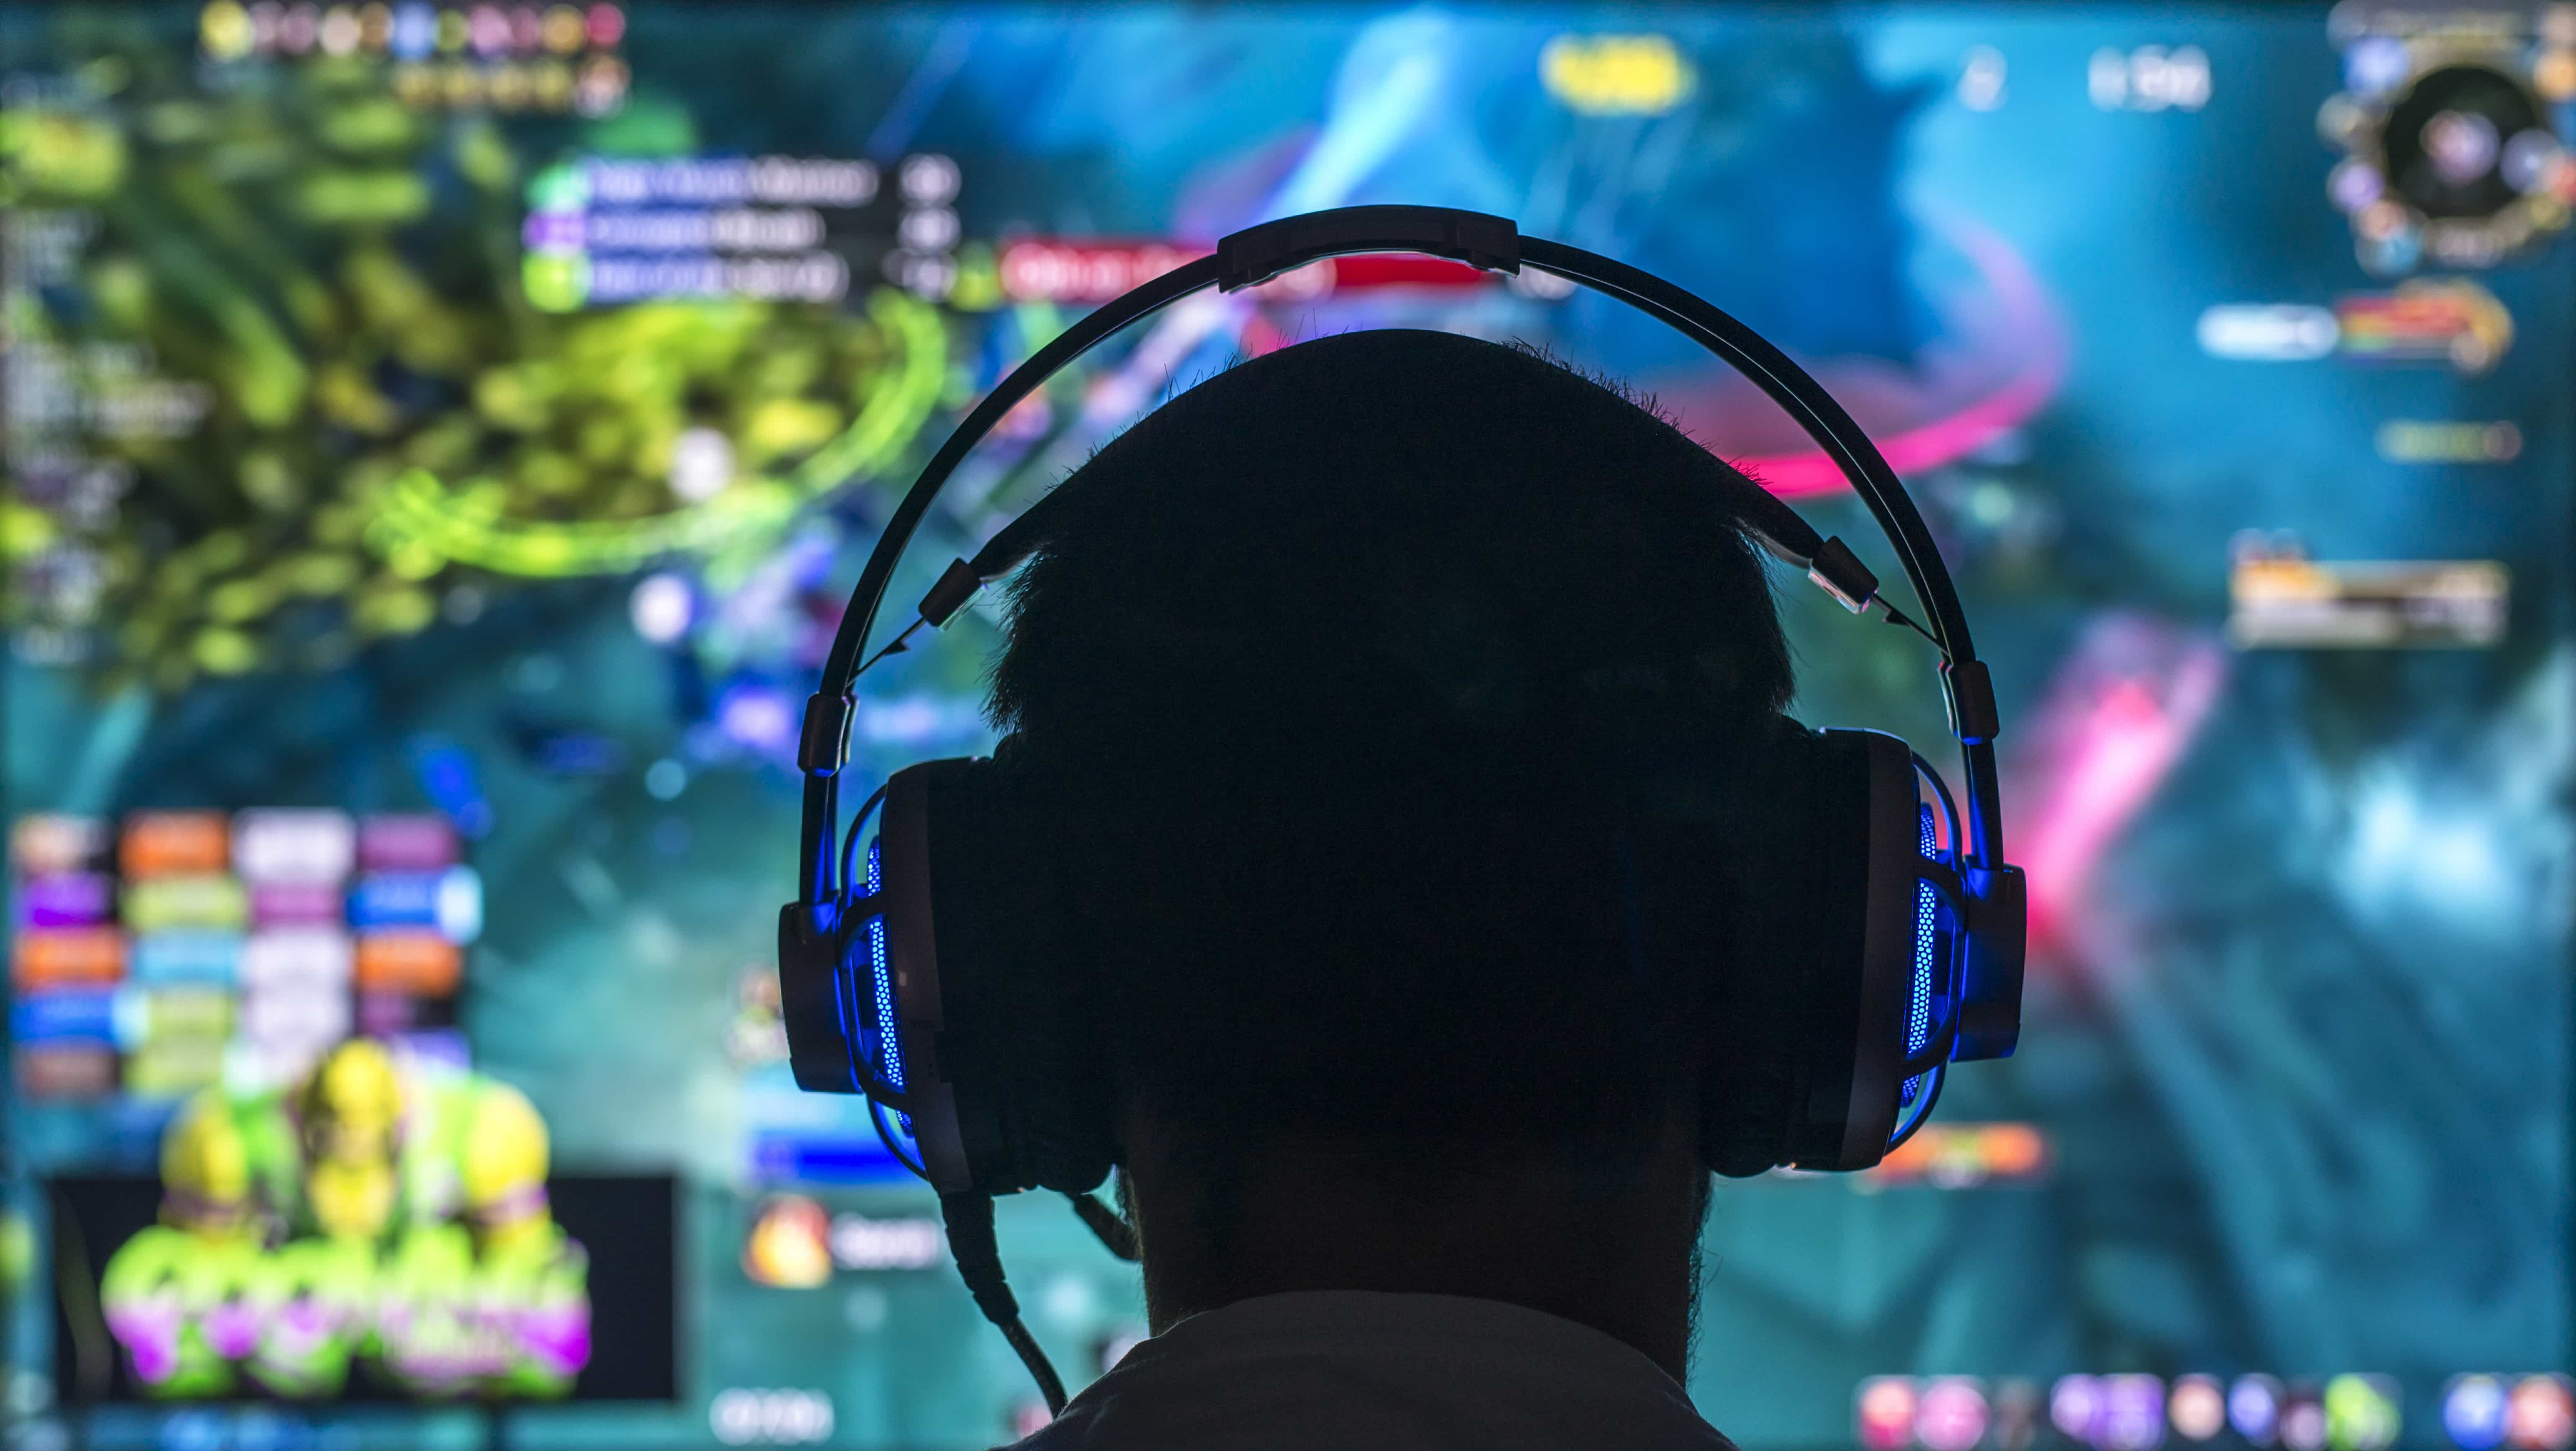 The Evolution of Game Audio Technology by David Weaver